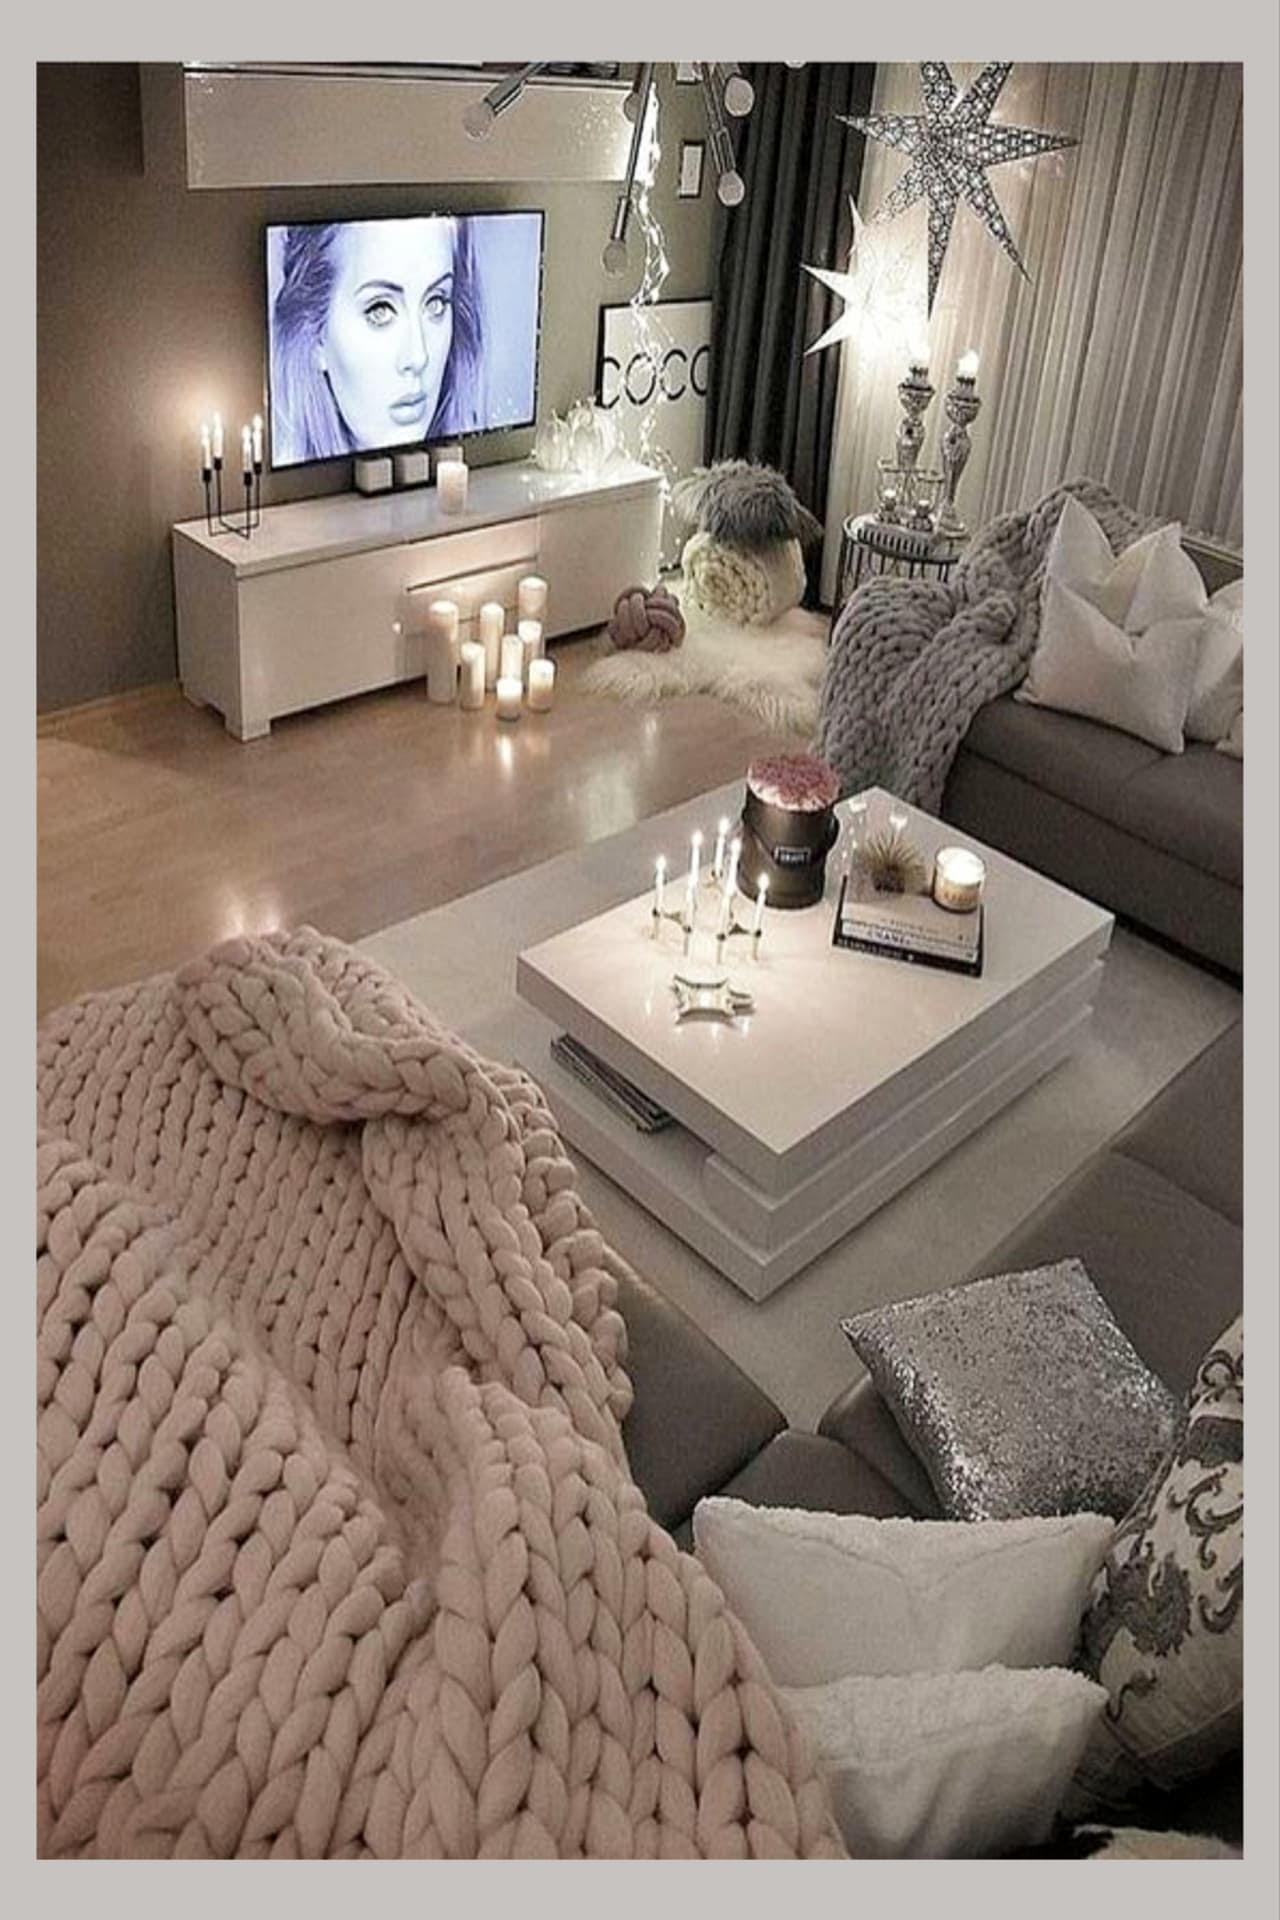 Cozy Neutral Living Room Ideas - Earthy Gray Living Rooms To Copy - Clever DIY Ideas